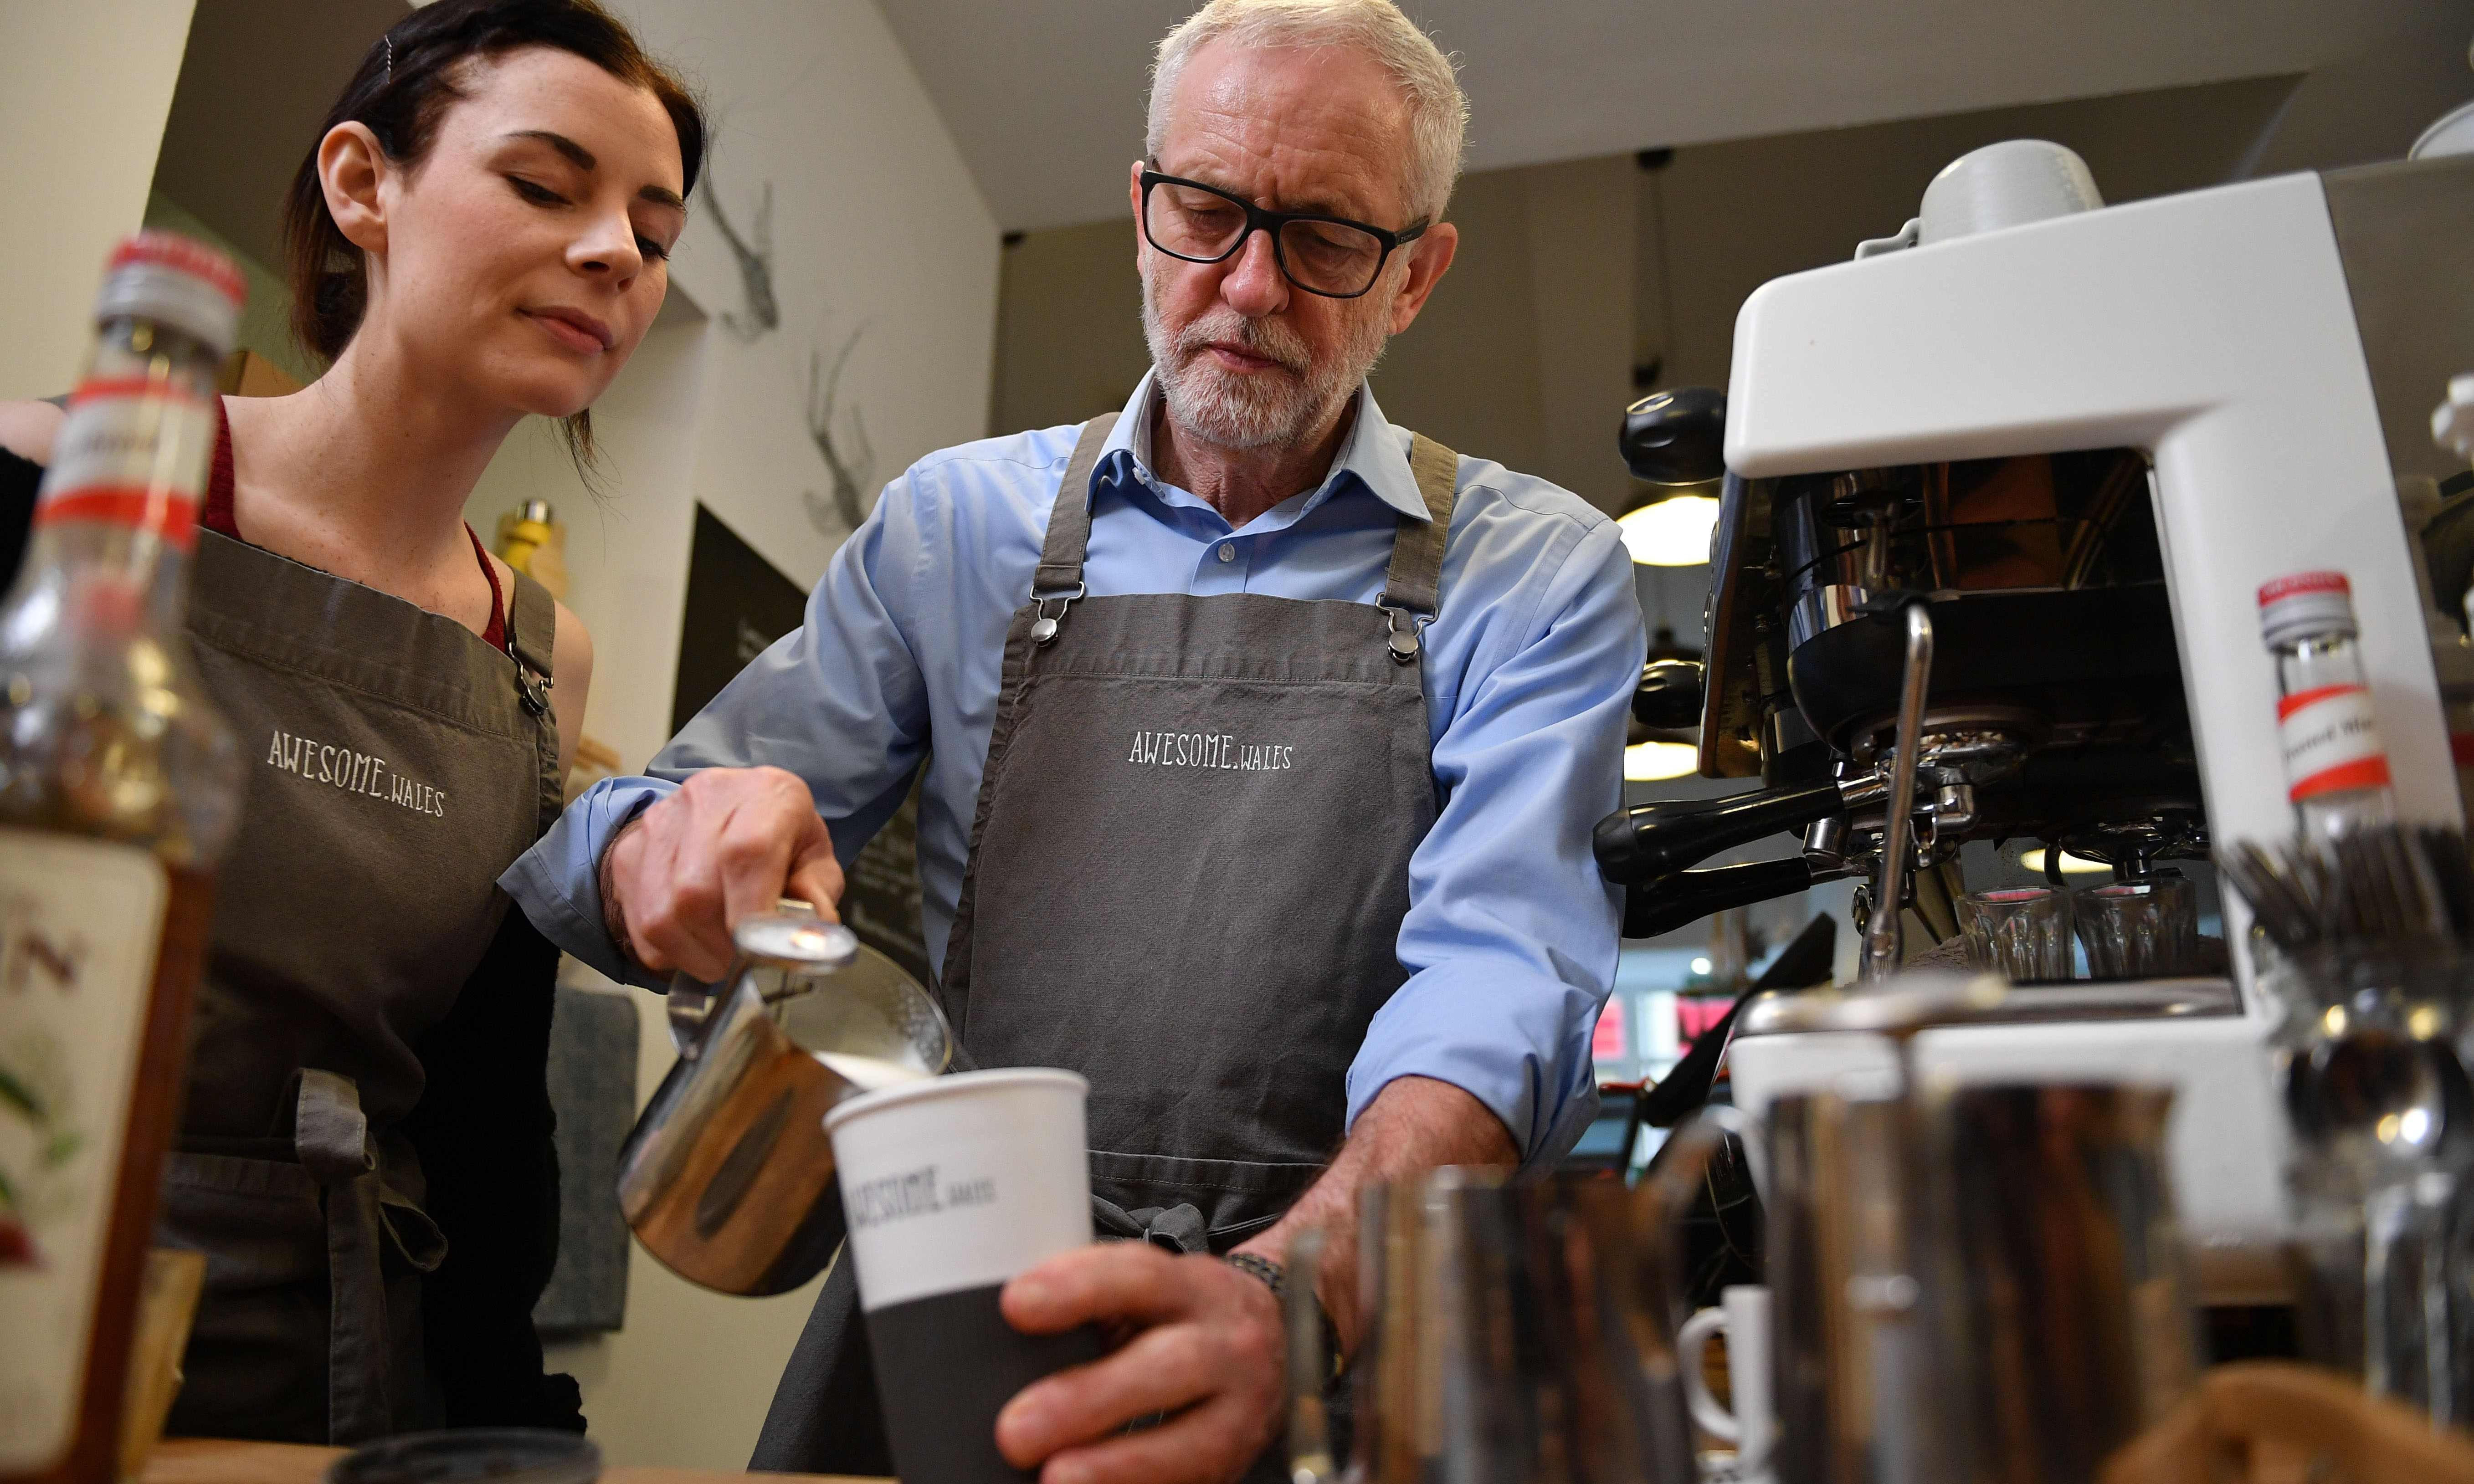 Coffee, jam and confidence as Jeremy Corbyn comes to the seaside